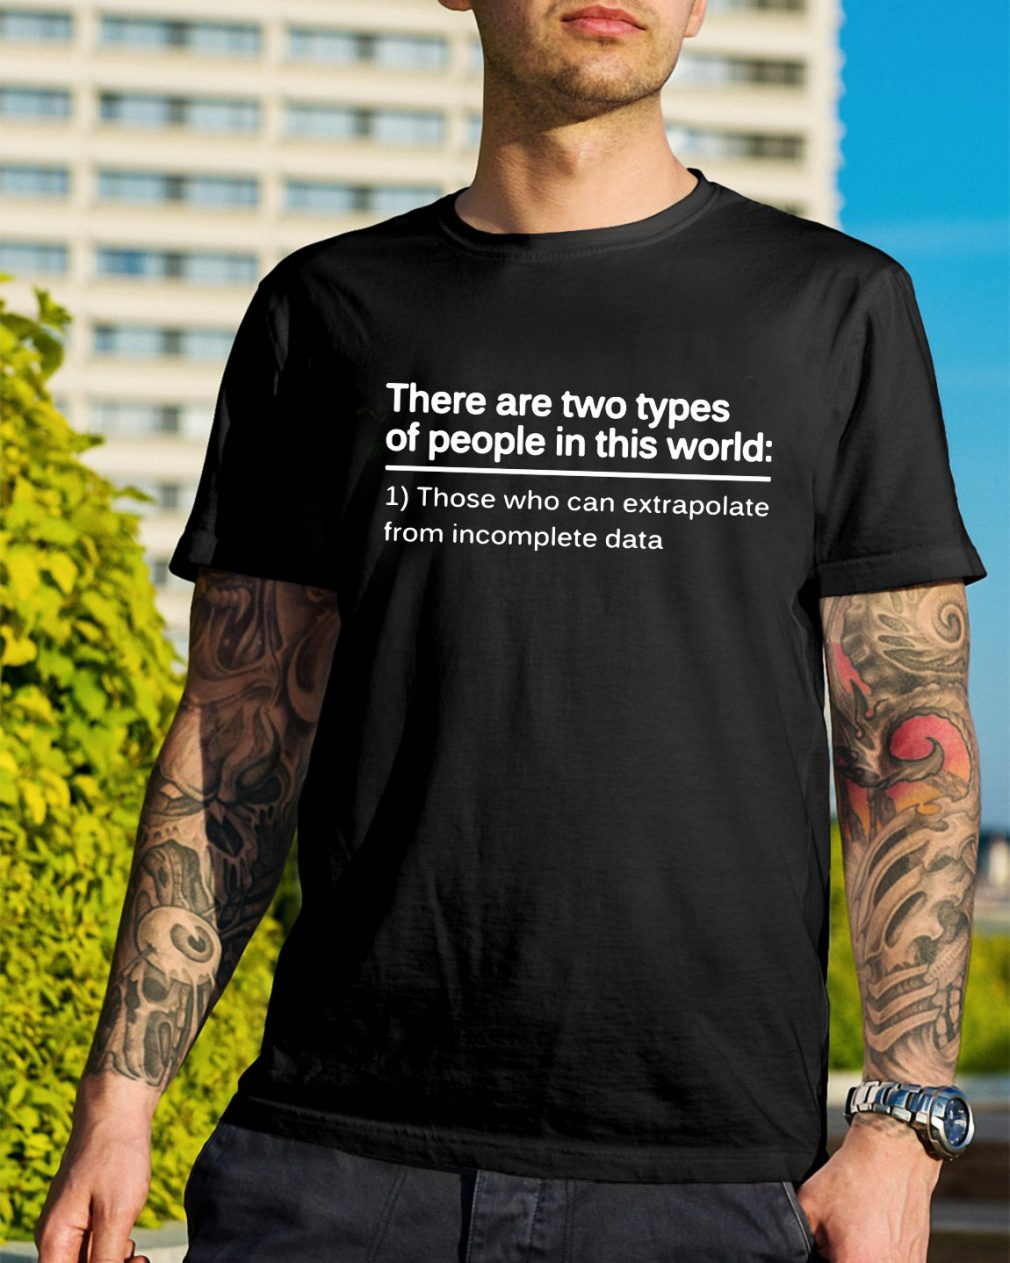 There are two types of people in this world shirt